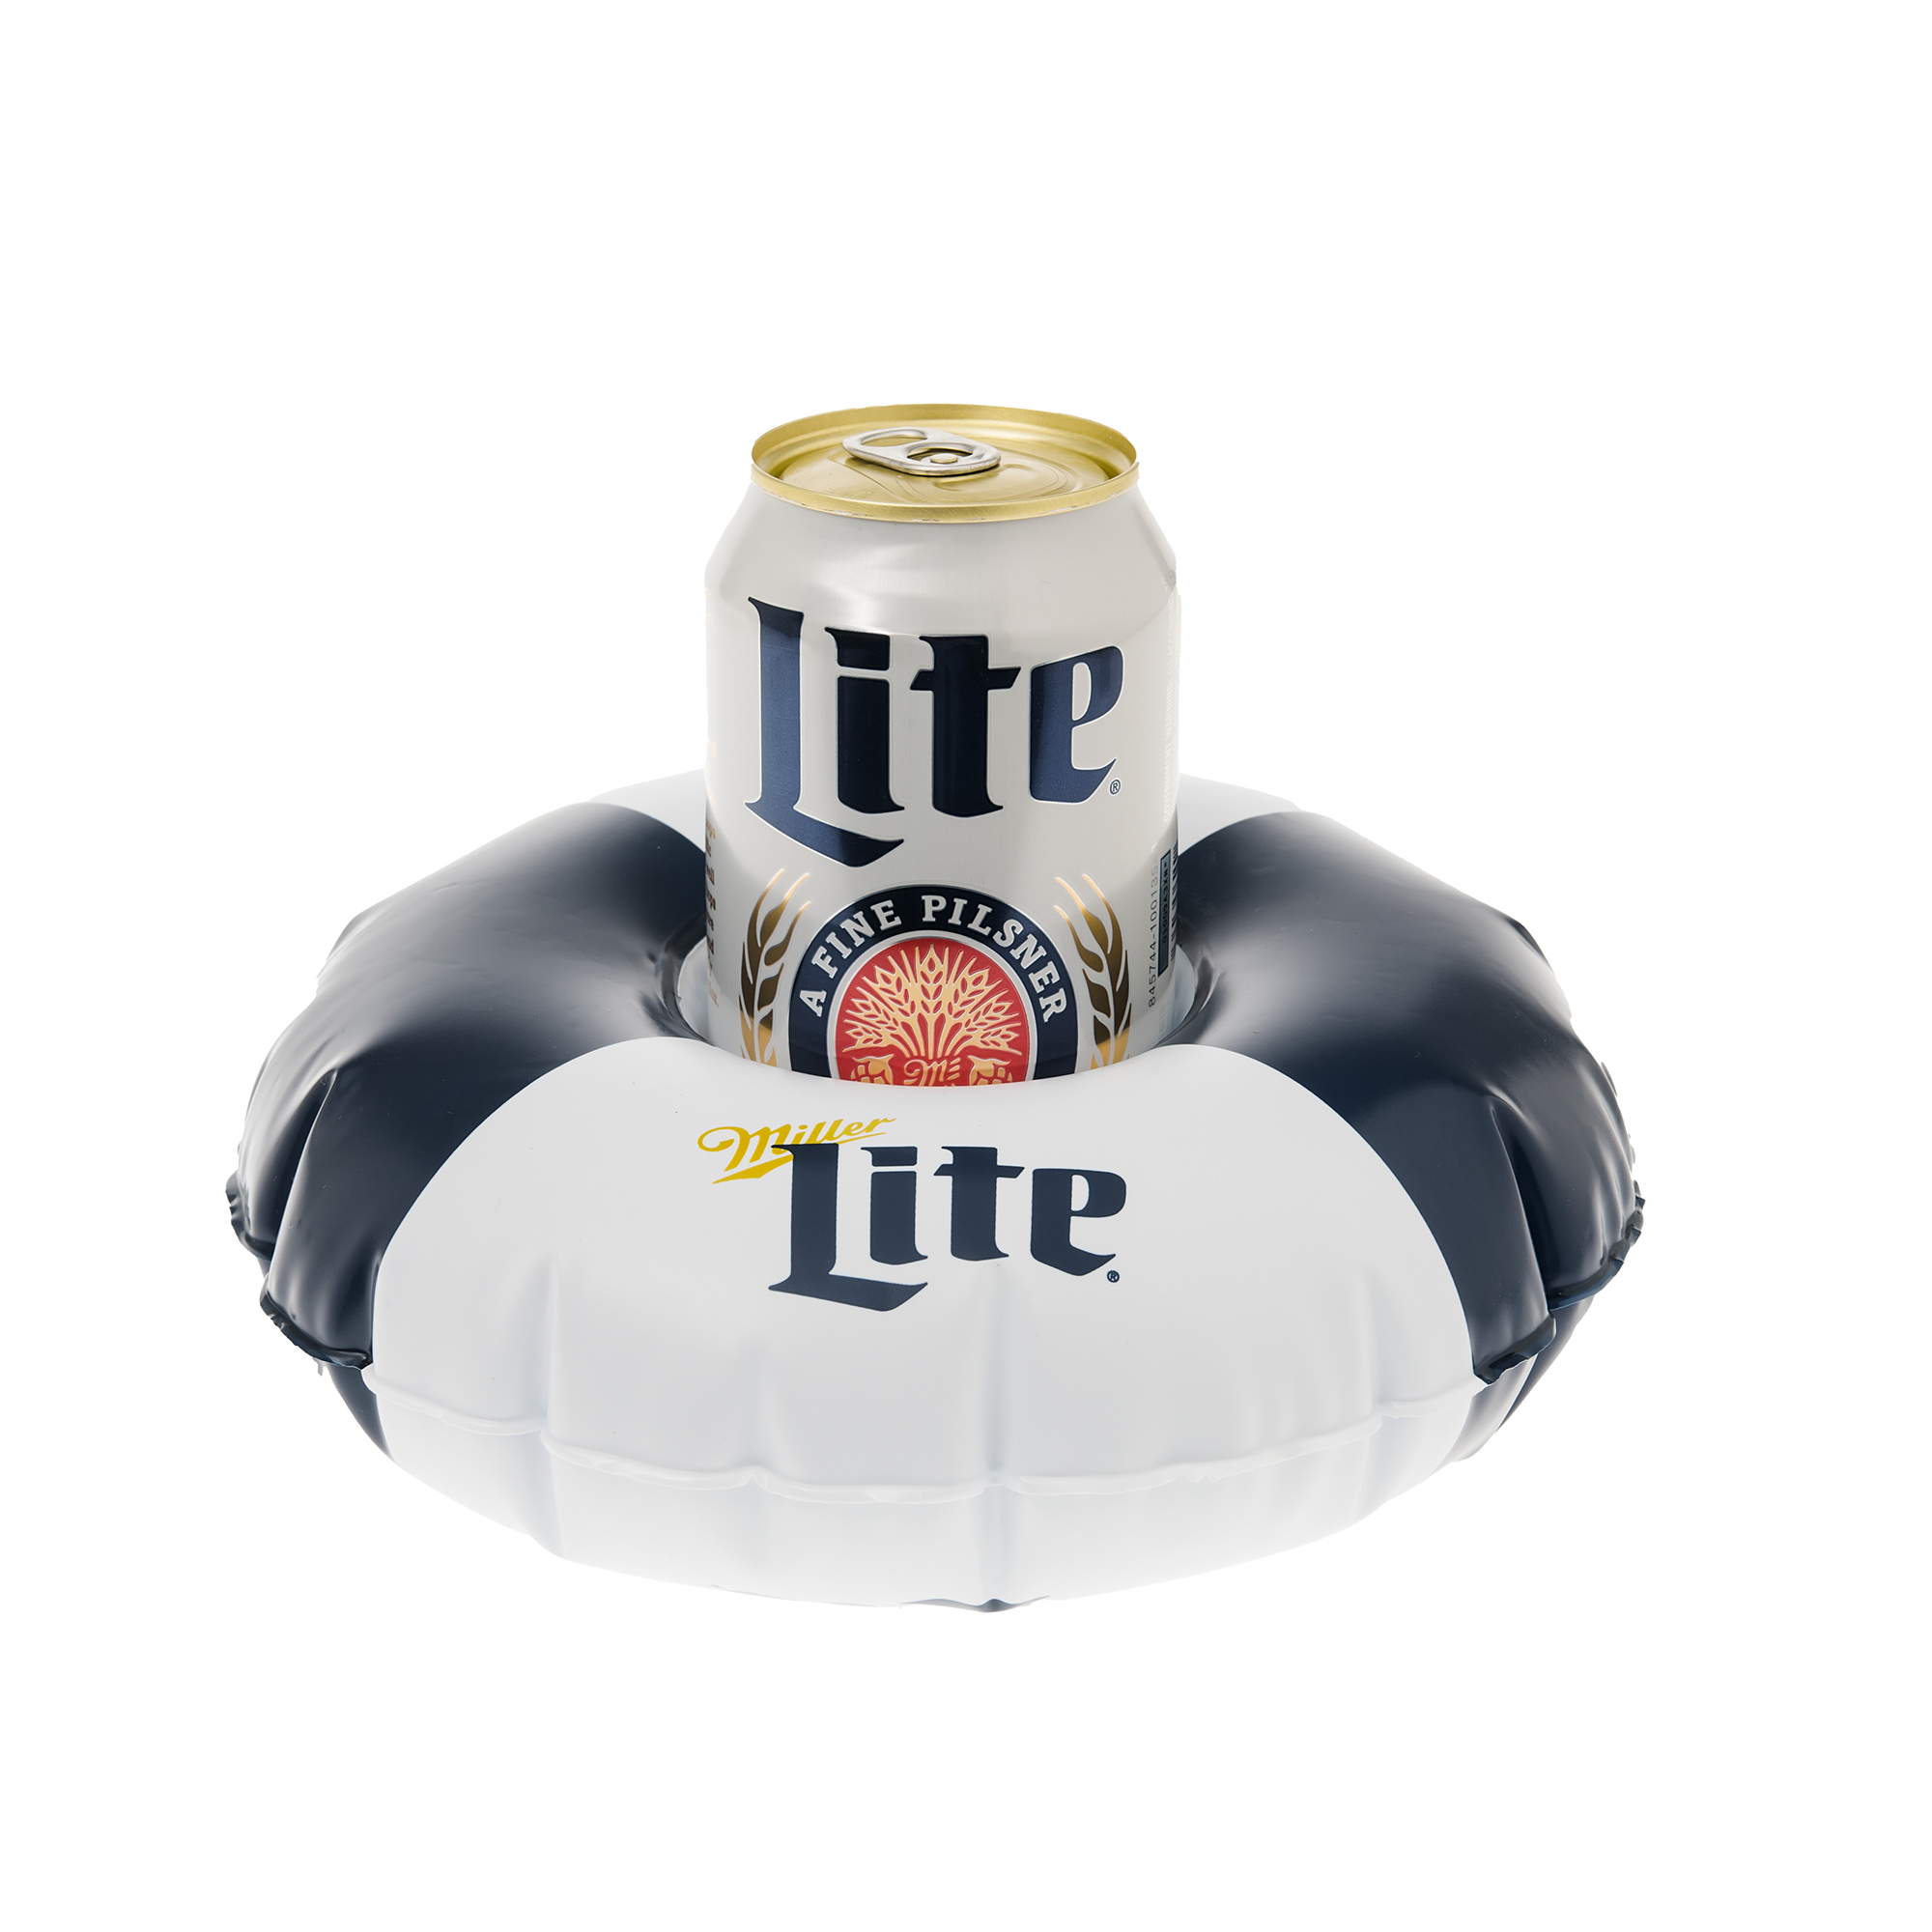 MILLER LITE BEVERAGE POOL FLOAT